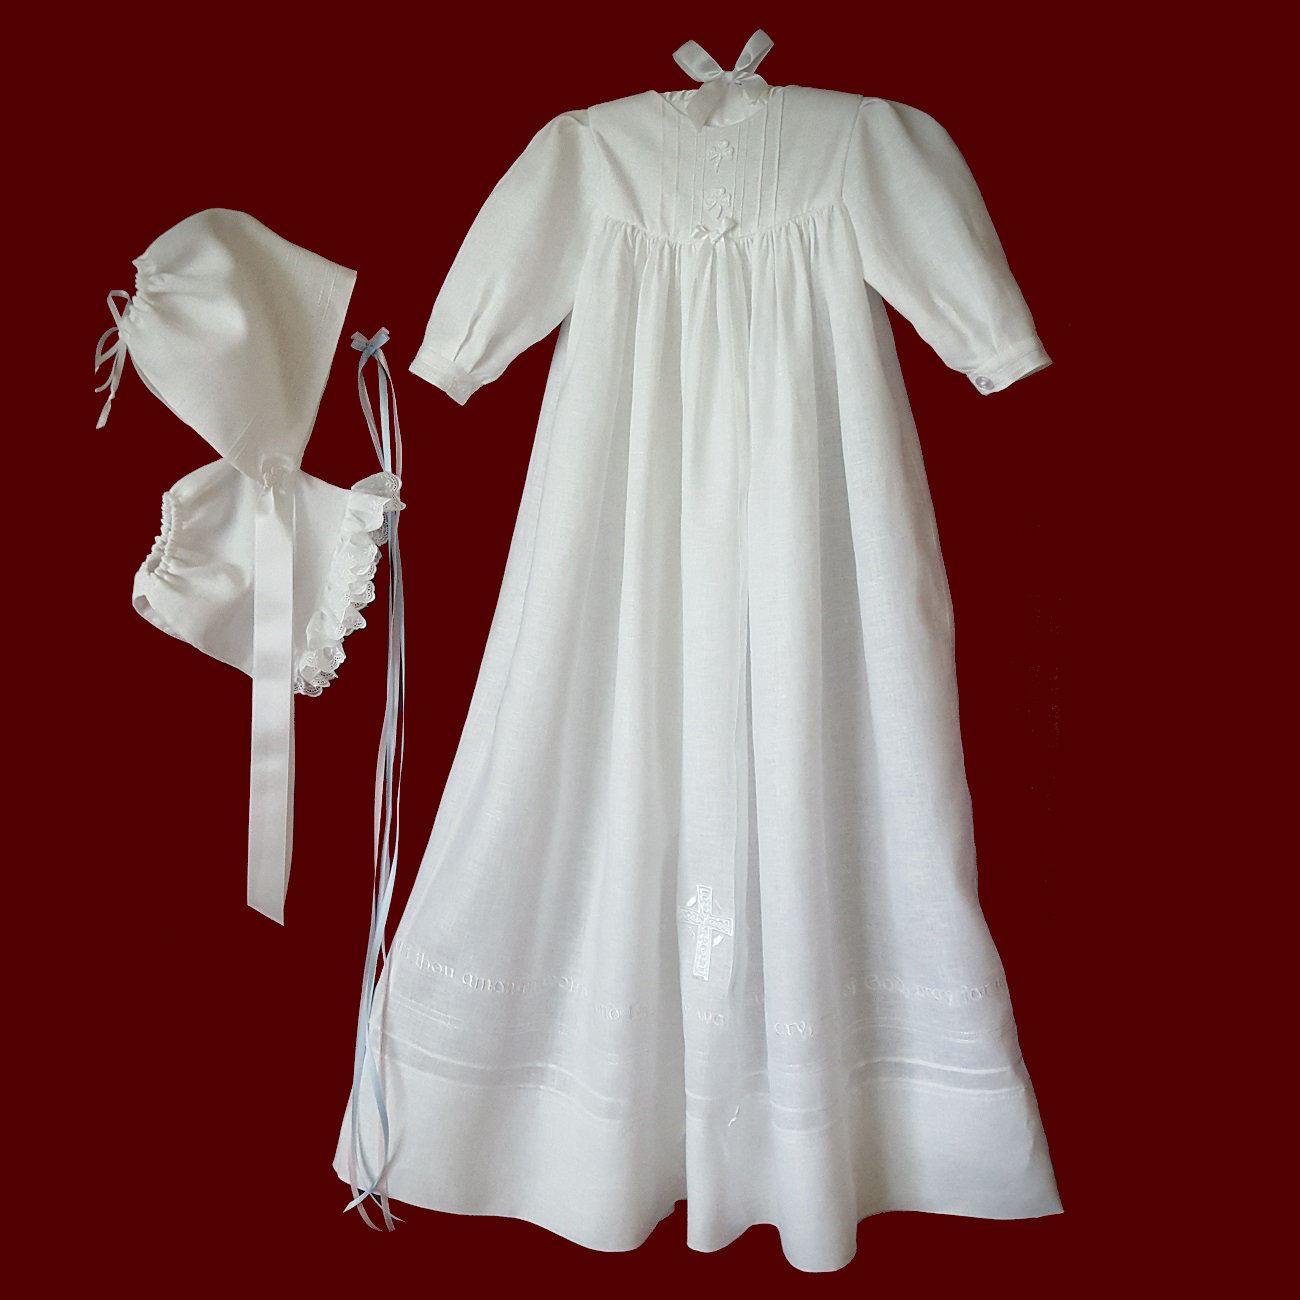 Irish Linen Hail Mary Prayer Unisex Christening Gown, Slip & Bonnet With Girl Liner, Size 3-6 Months